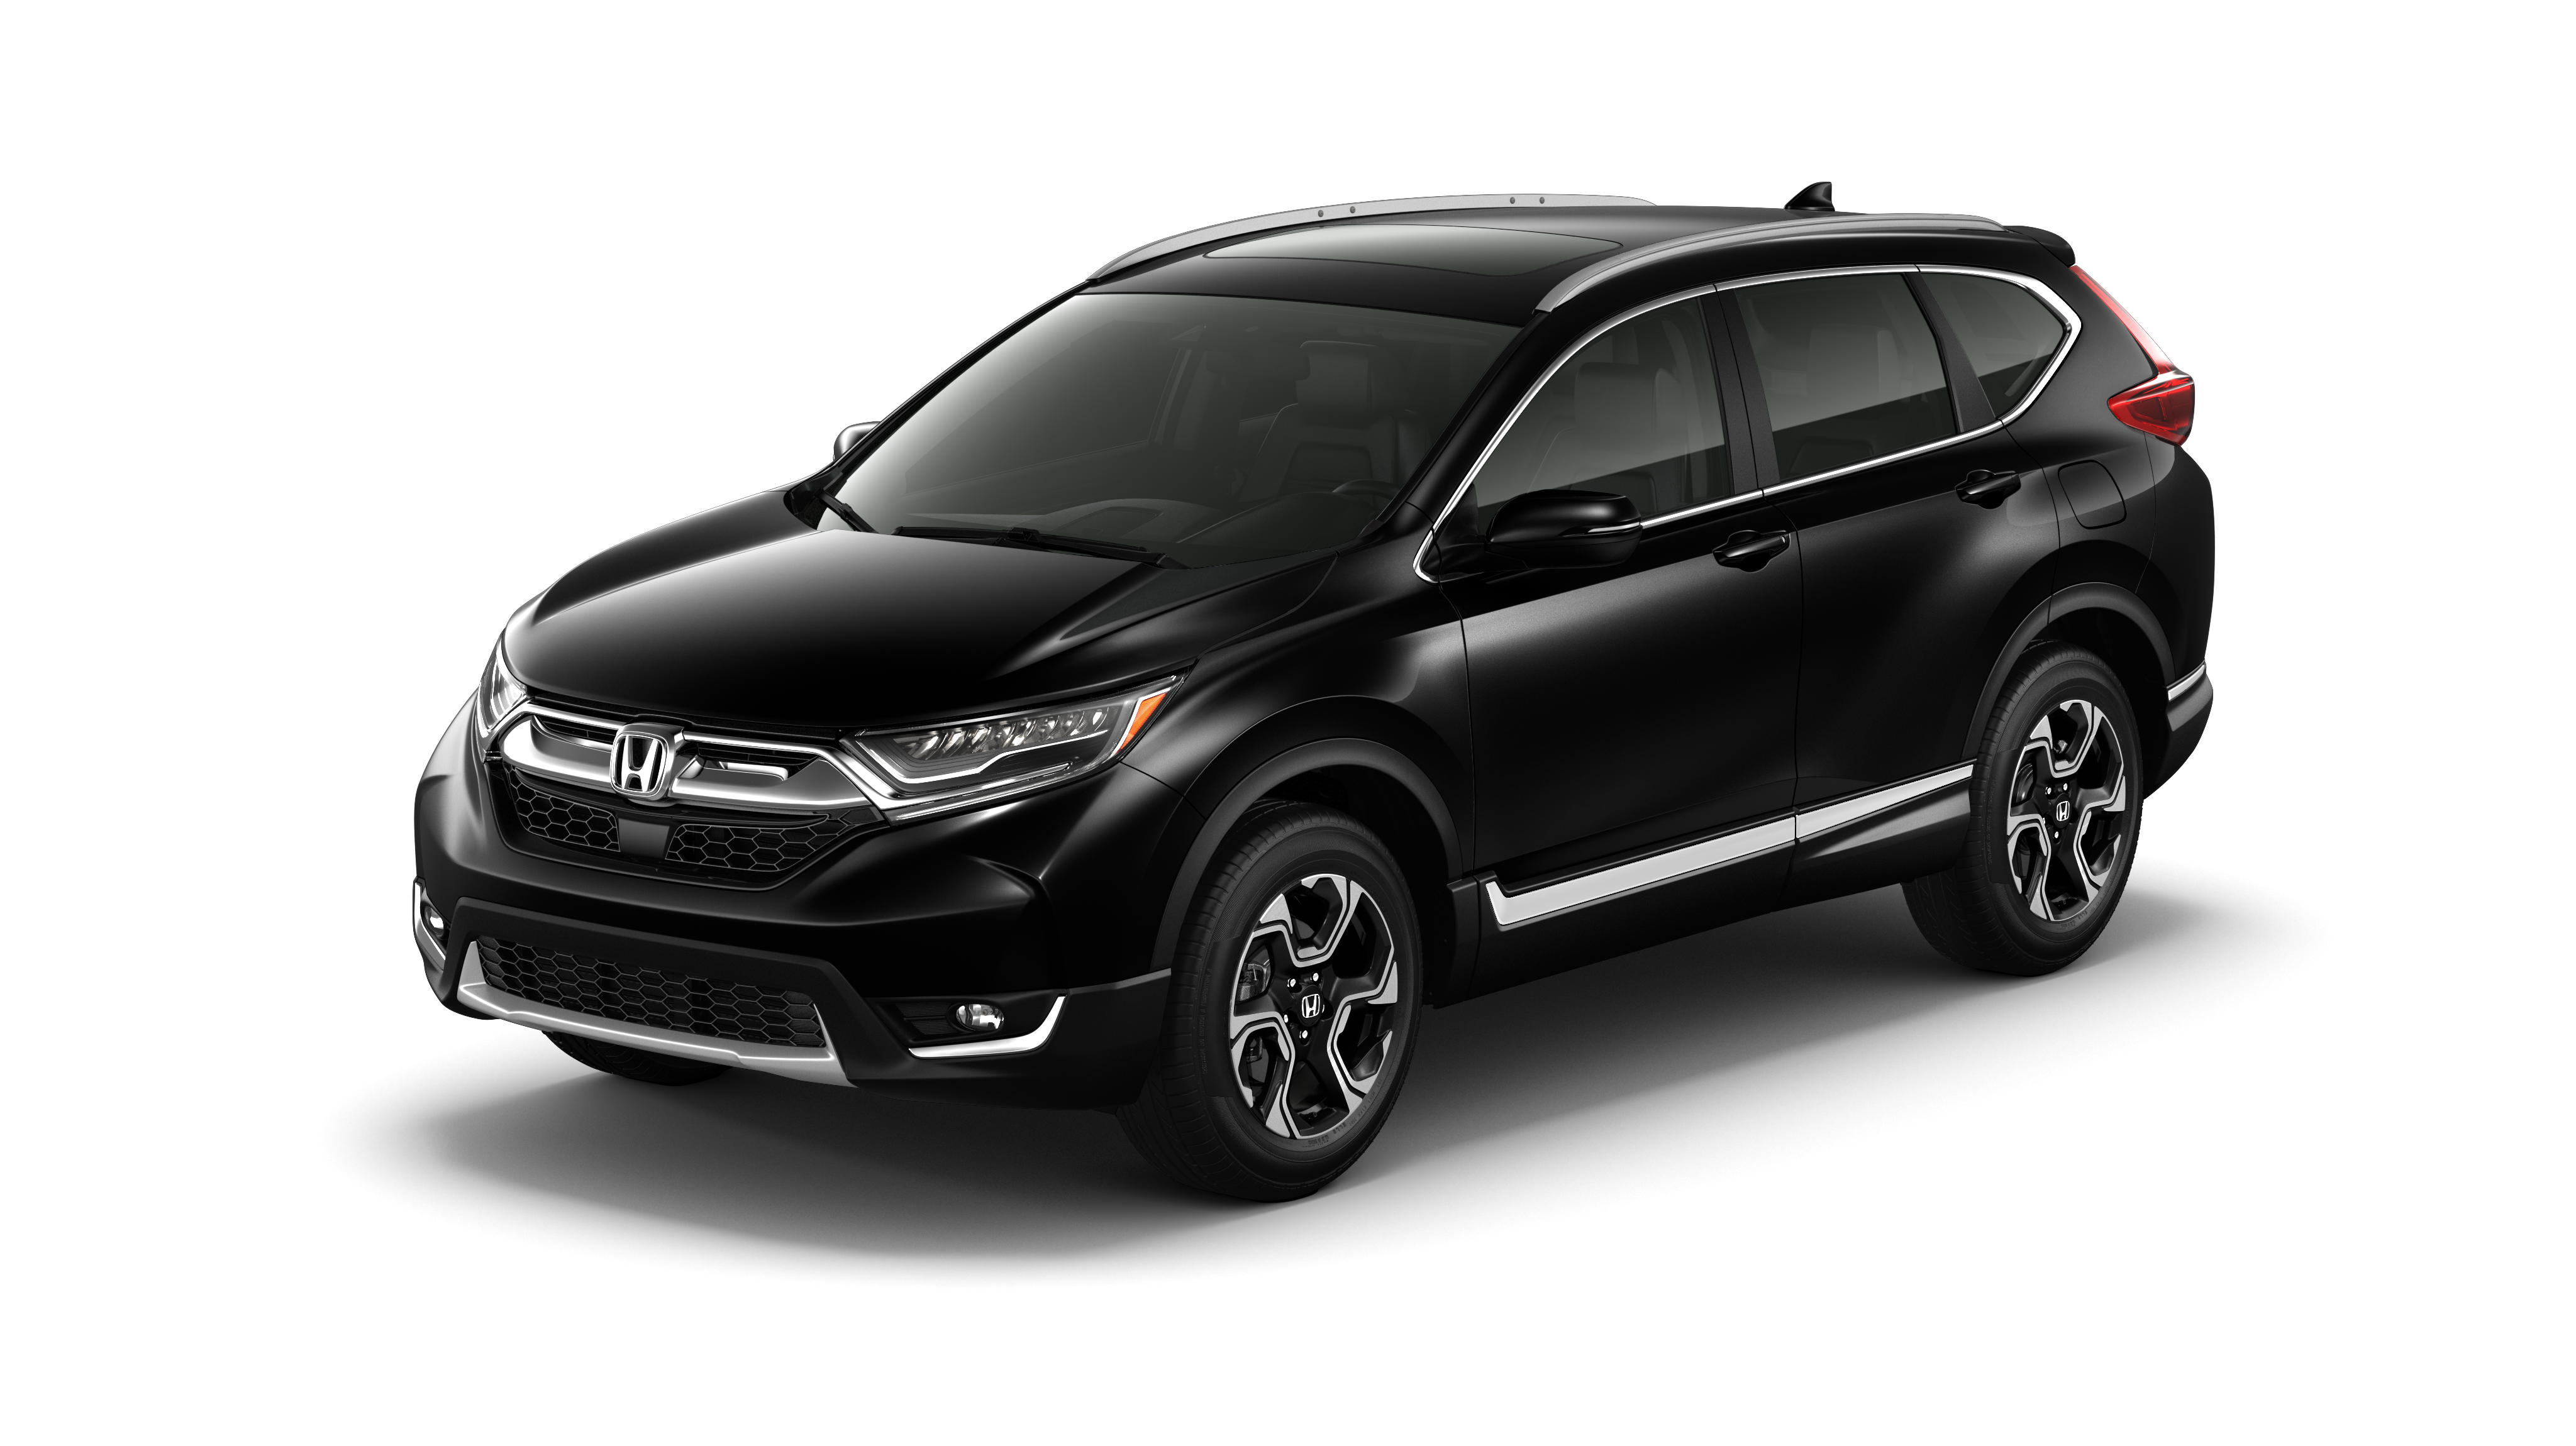 new 2017 honda cr v suvs in huntington ny huntington honda. Black Bedroom Furniture Sets. Home Design Ideas